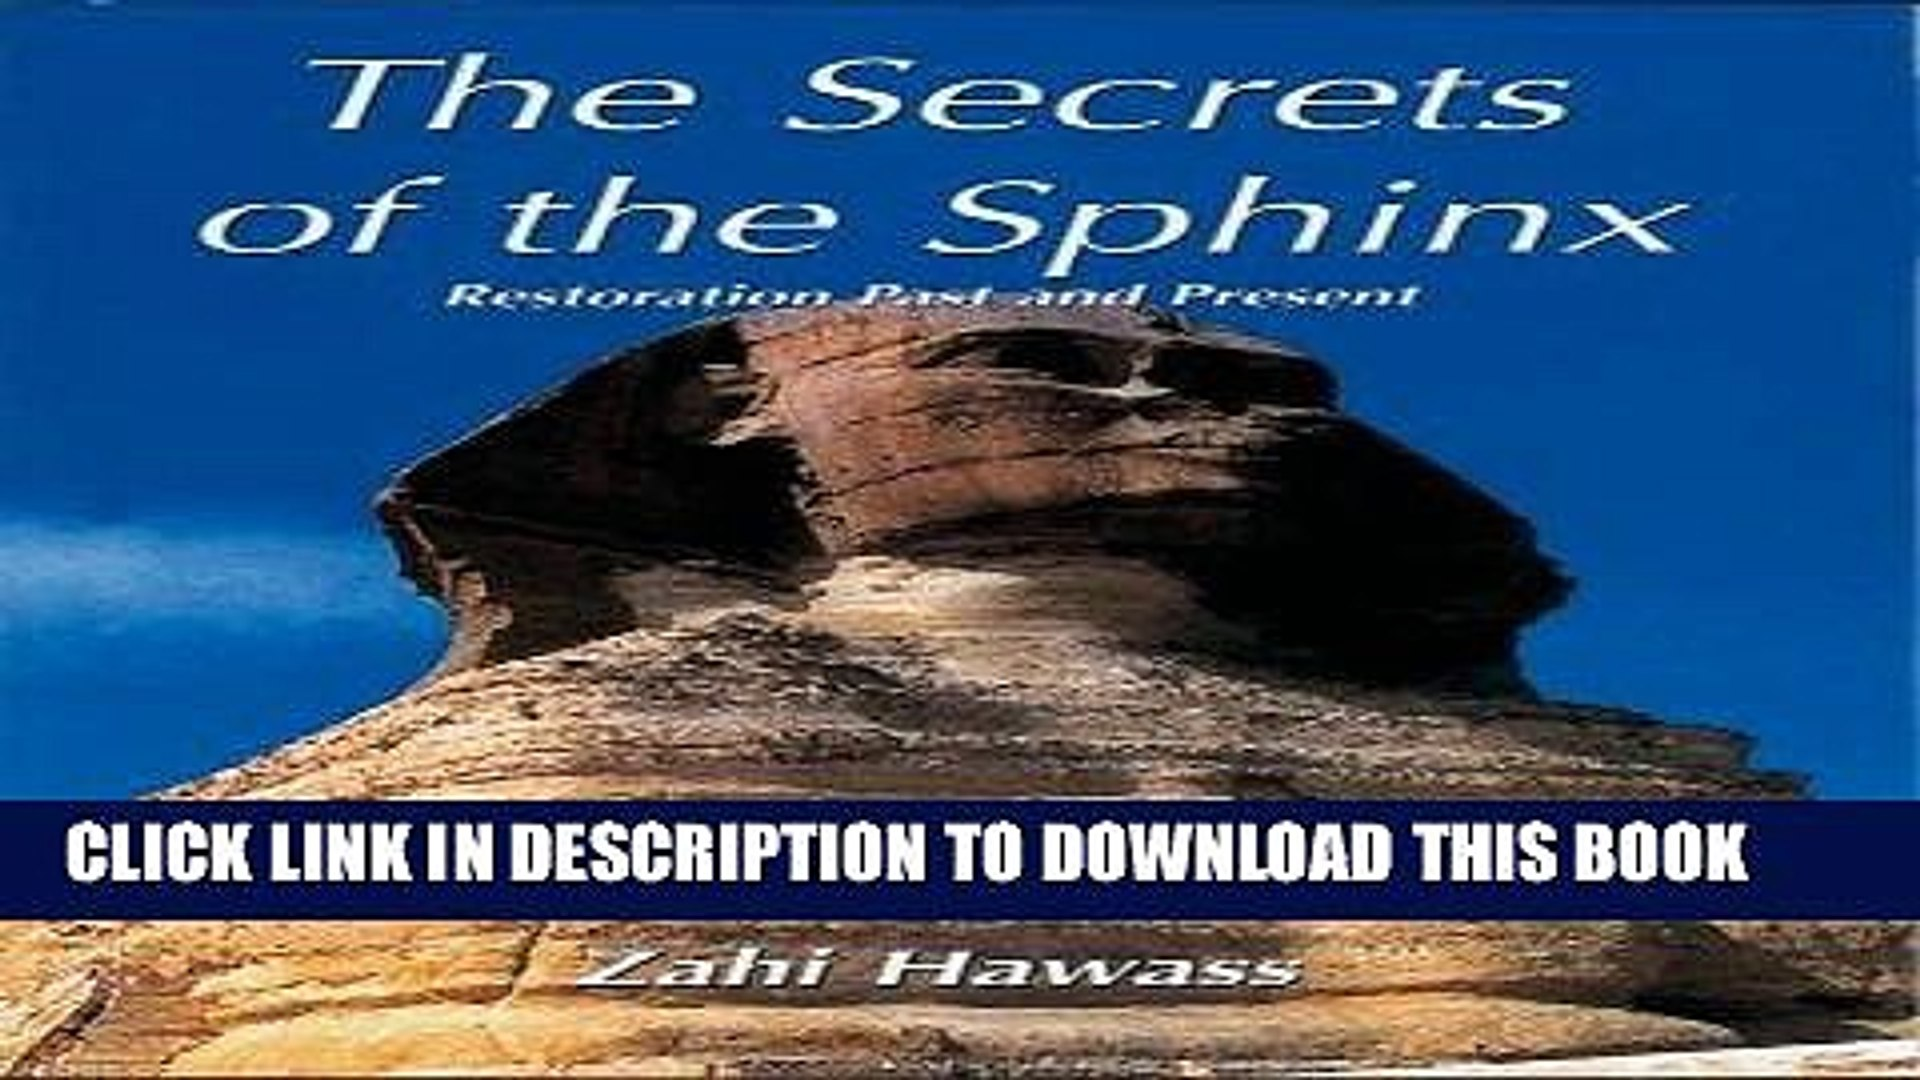 Ebook The Secrets of the Sphinx: Restoration Past and Present (English and Arabic Edition) Free Read